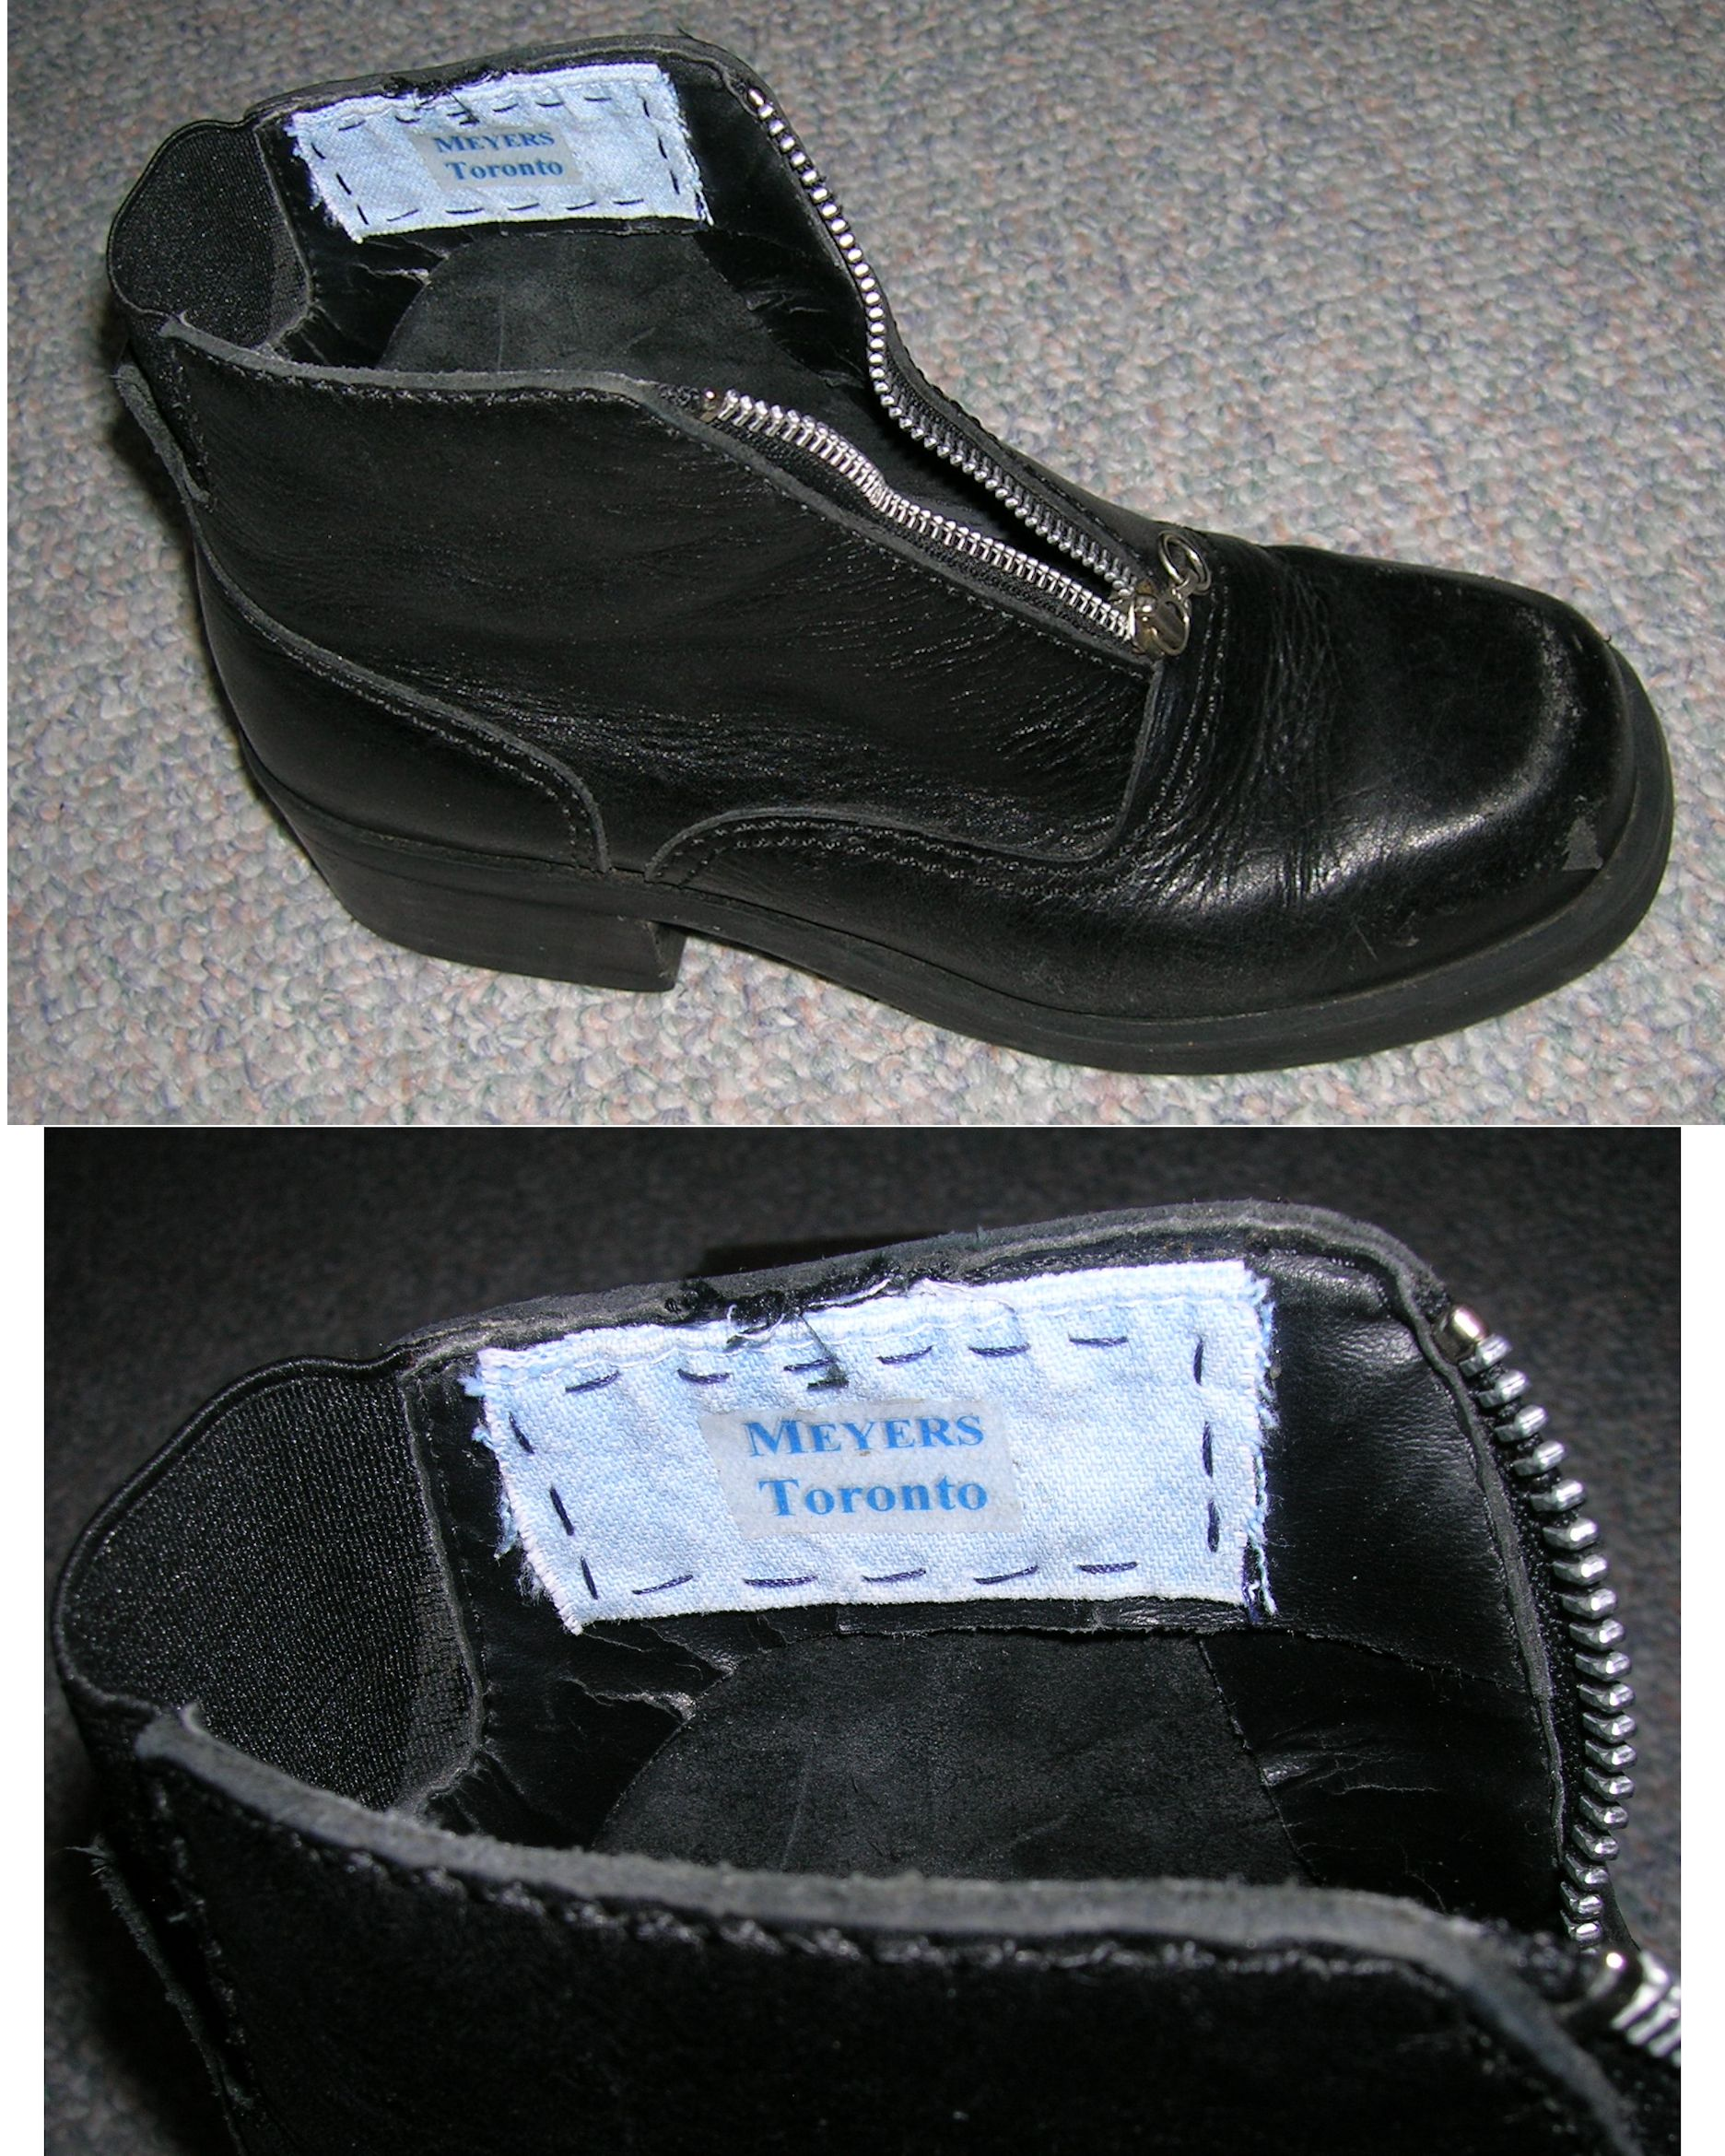 ... we had a line of inexplicable incidents all within the limits of two days, which included the receipt of the printed letter, the black-bearded spy in the hansom, the loss of the new brown boot, the loss of the old black boot, and now the return of the new brown boot. ~ WTB HOUN Evidence Box